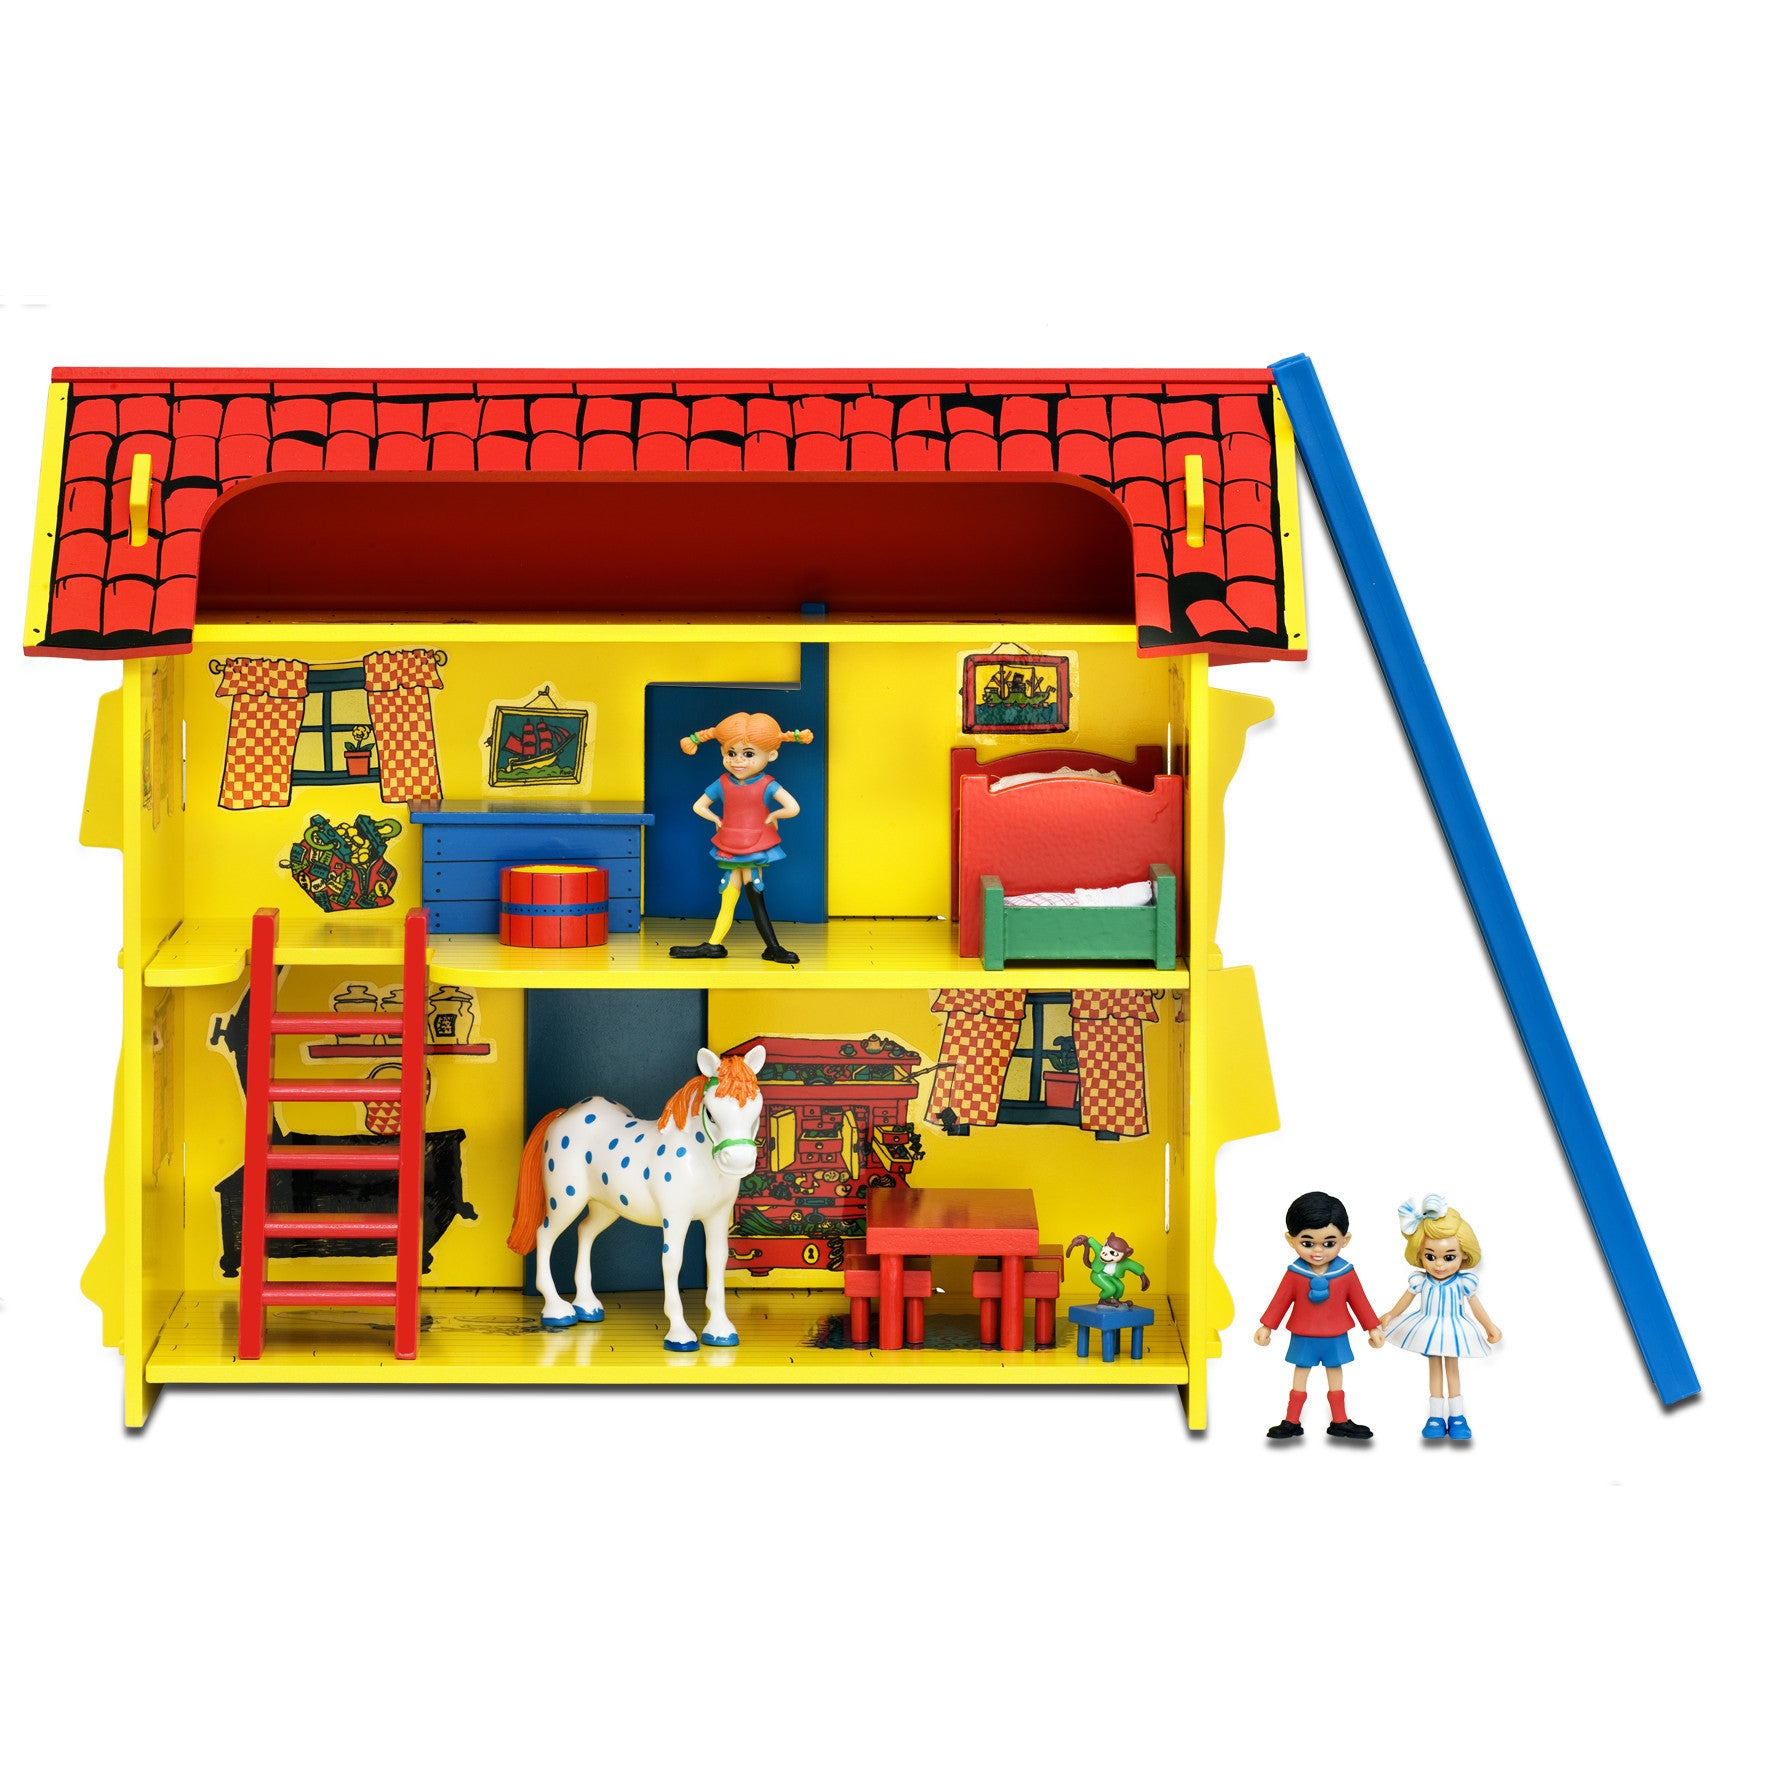 Pippi Longstocking - House Set includes Furniture & Figurines - Little Citizens Boutique  - 1